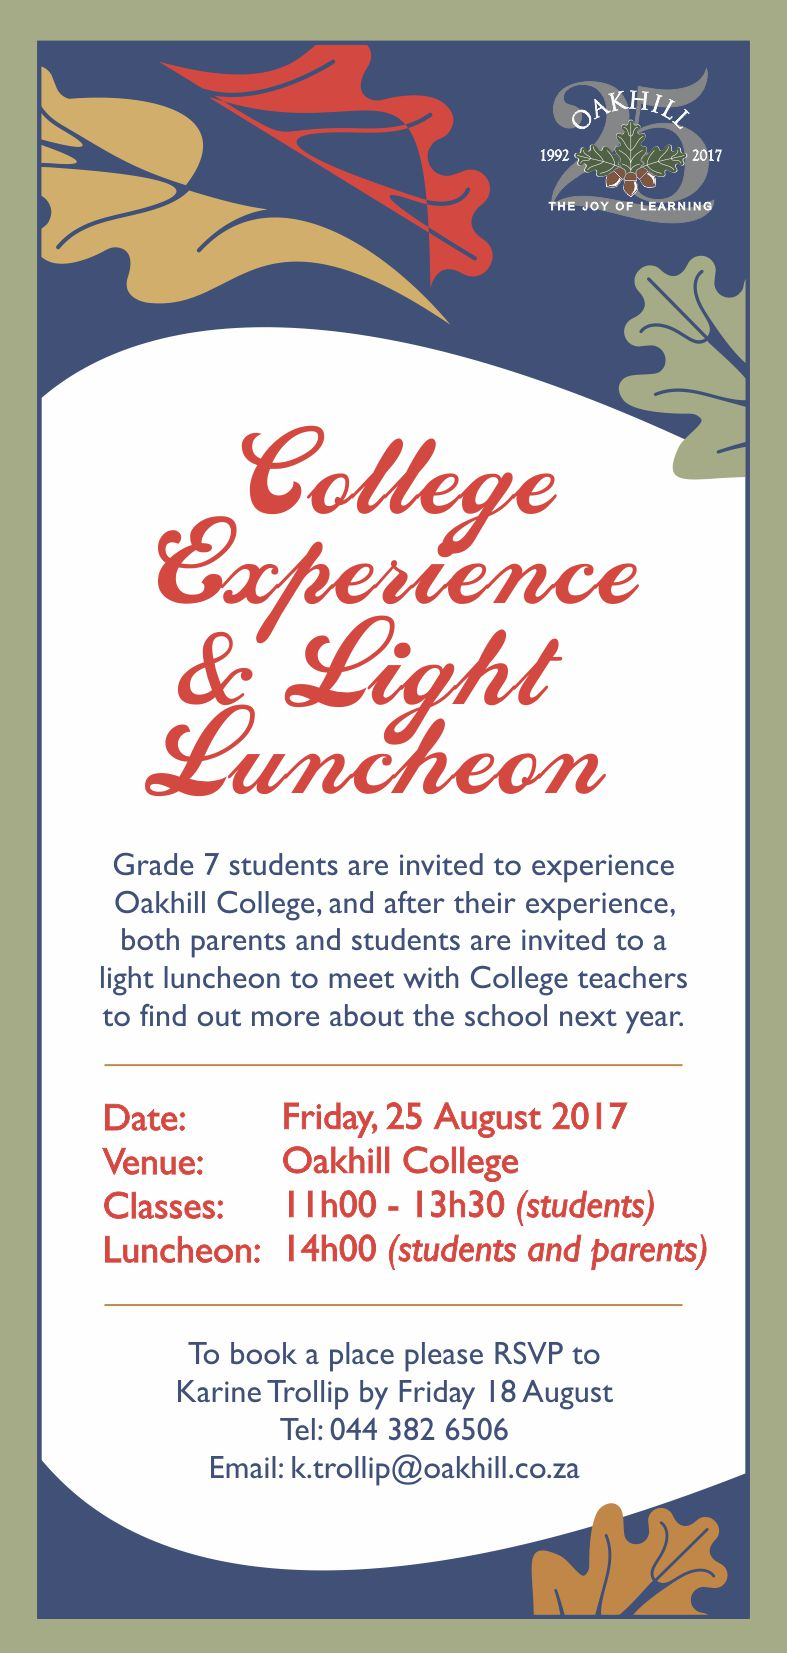 College Experience & Luncheon 2017